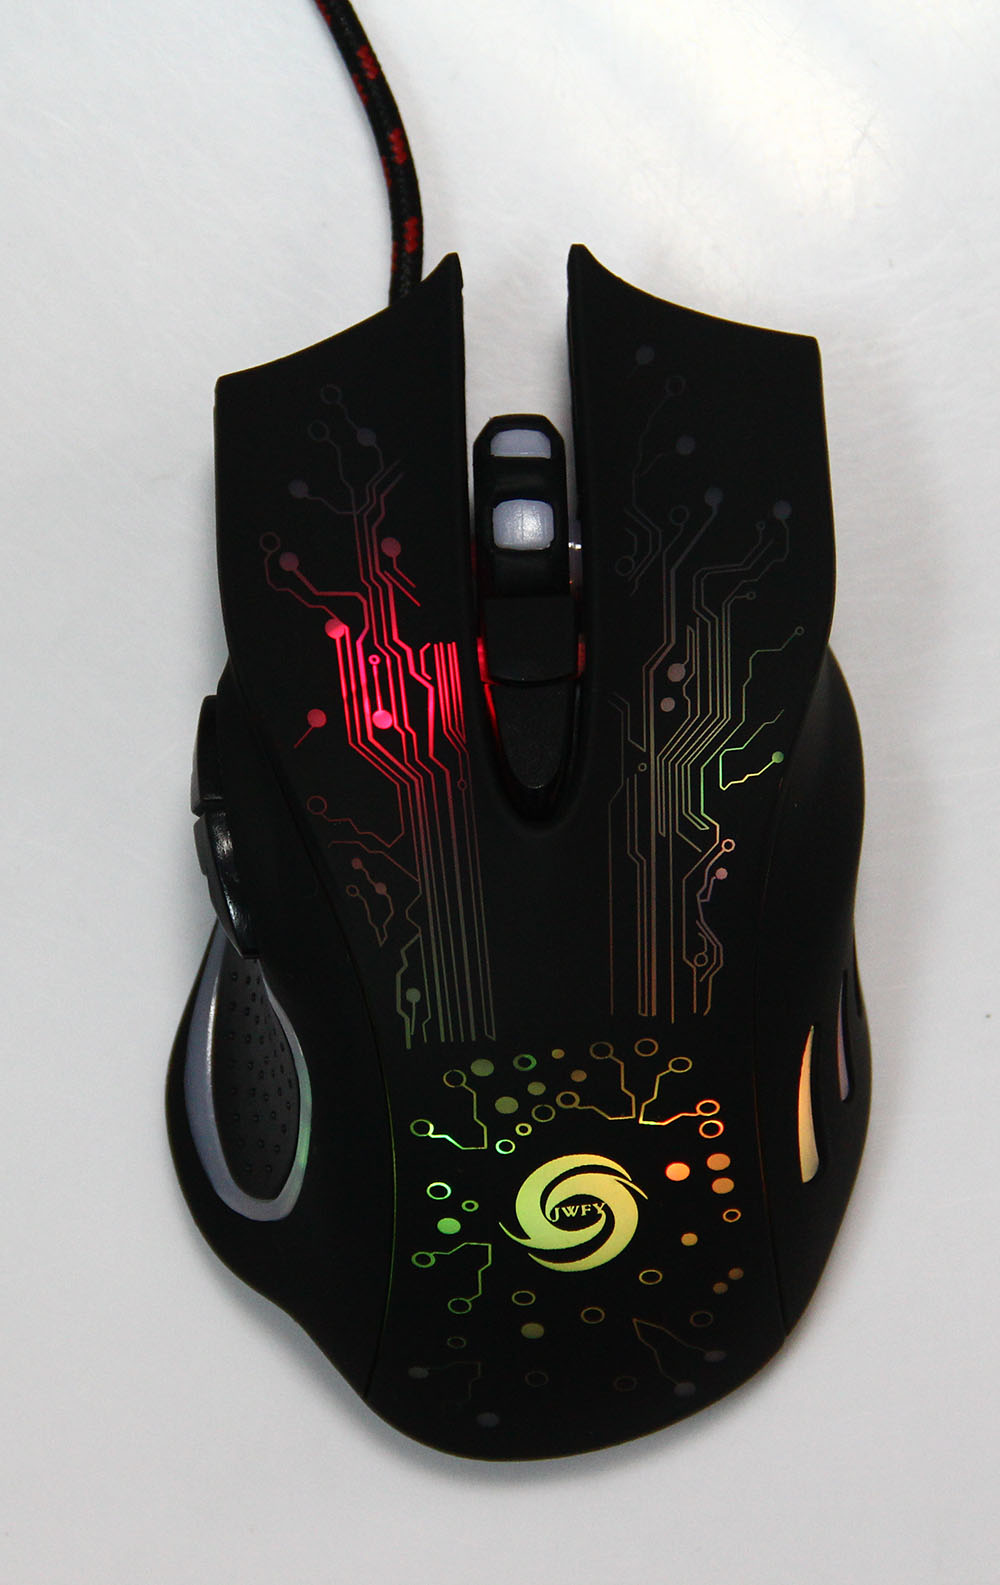 6 Buttons DPI Adjustable Optical USB Wired Gaming Mouse